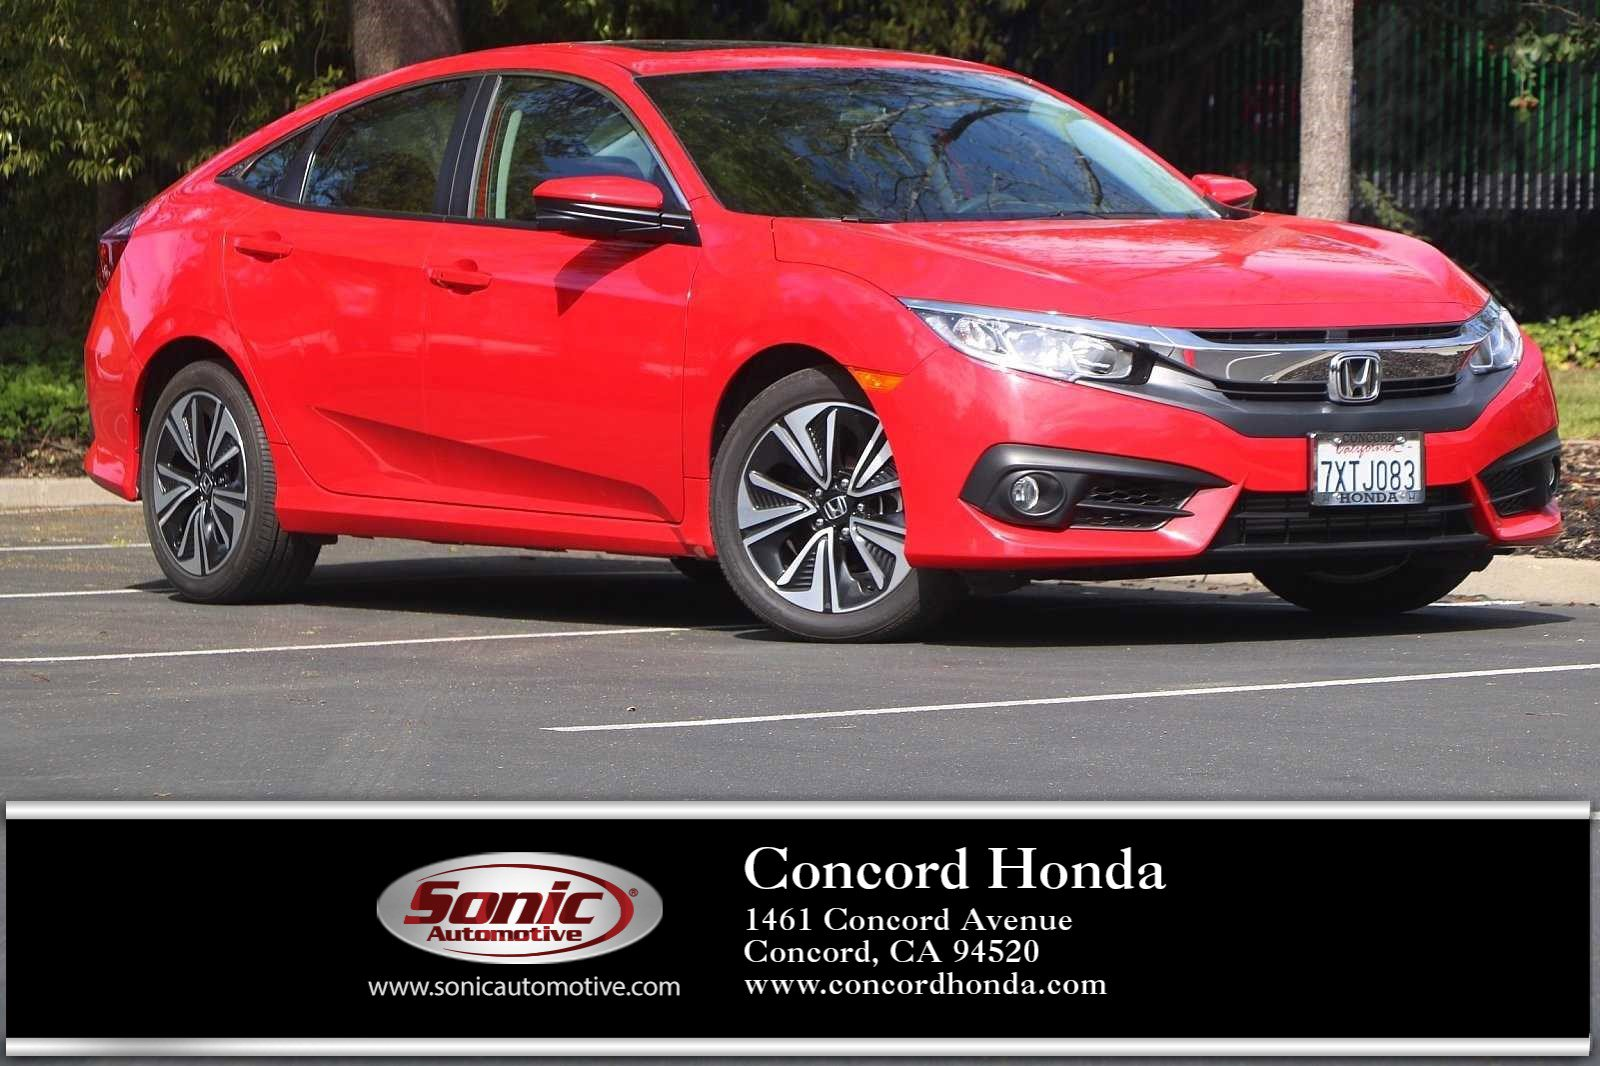 2017 Honda Civic EX-T Sedan image